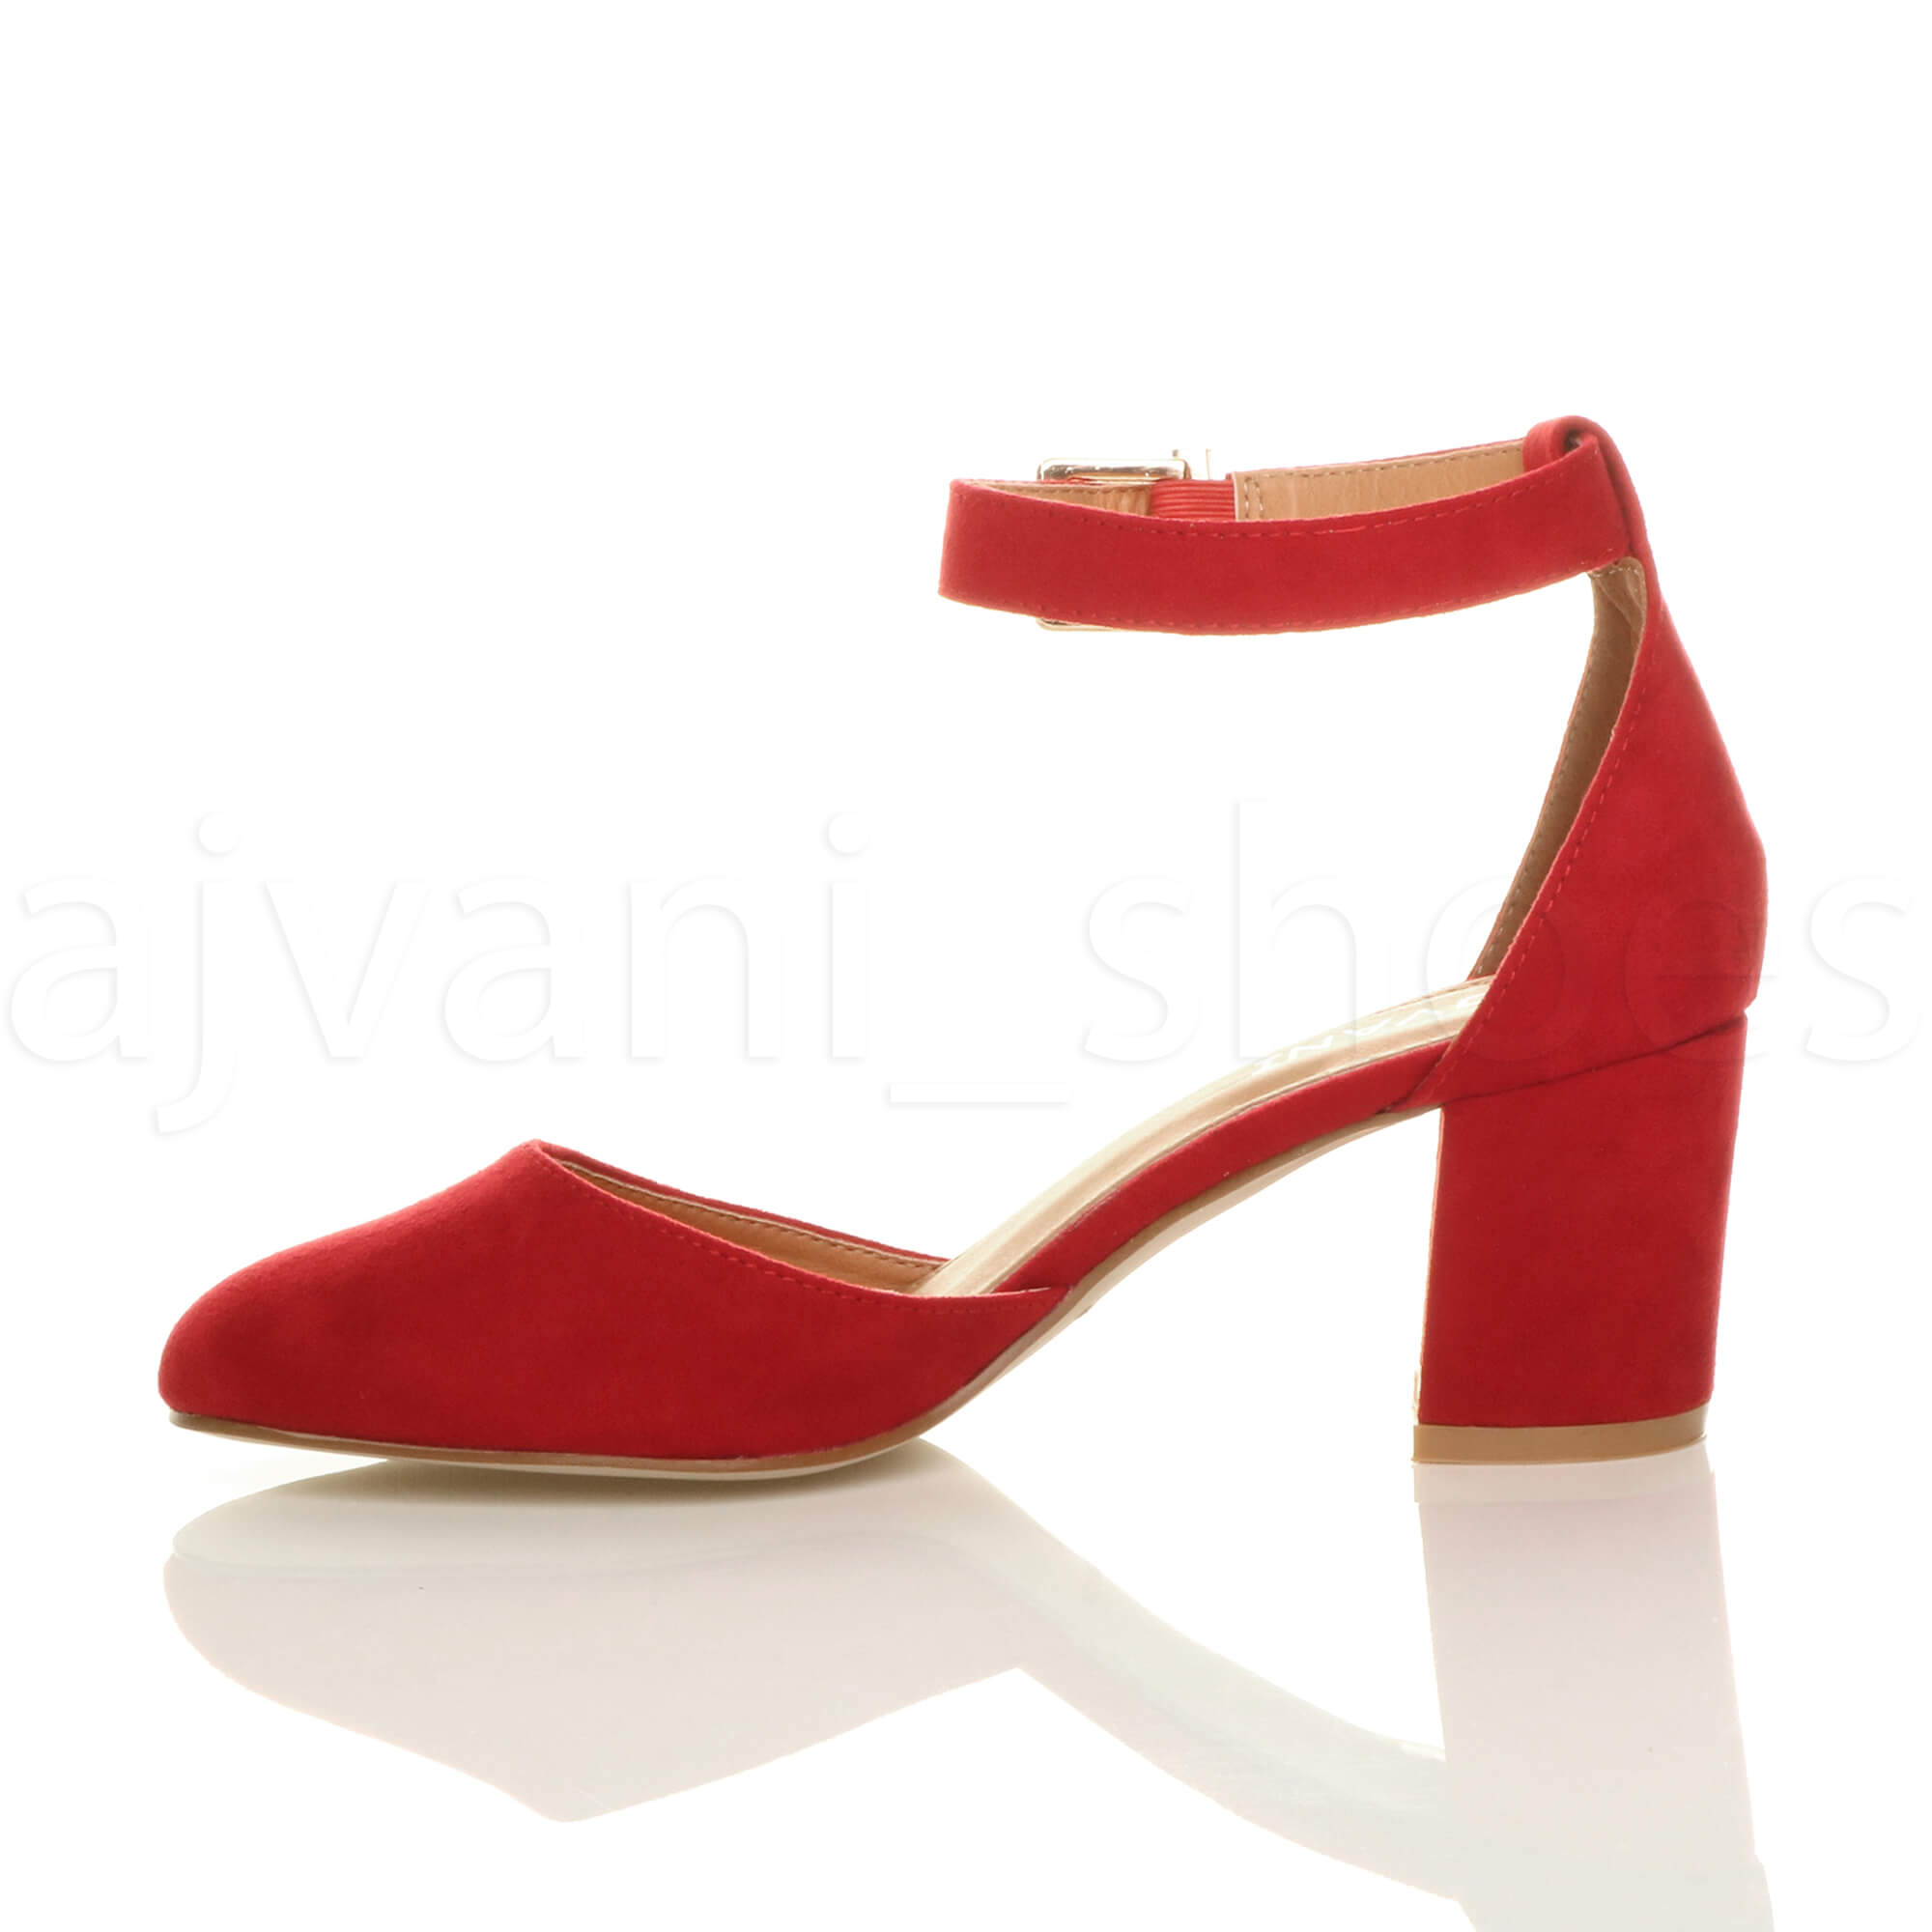 WOMENS-LADIES-LOW-MID-BLOCK-HEEL-ANKLE-STRAP-MARY-JANE-COURT-SHOES-SANDALS-SIZE thumbnail 140